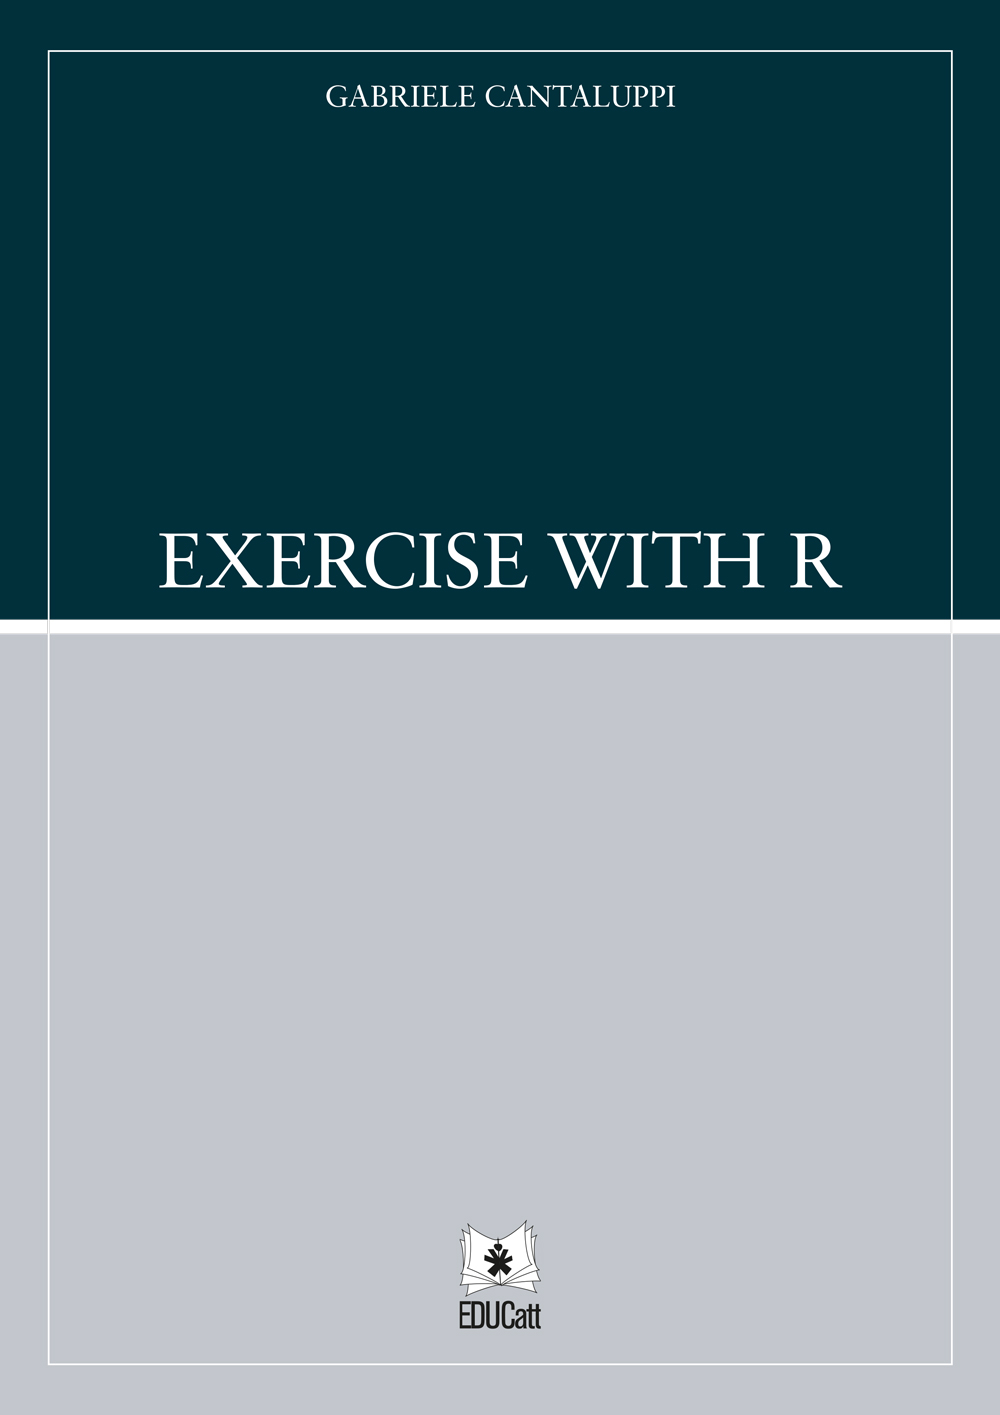 EXERCISE WITH R (2021)